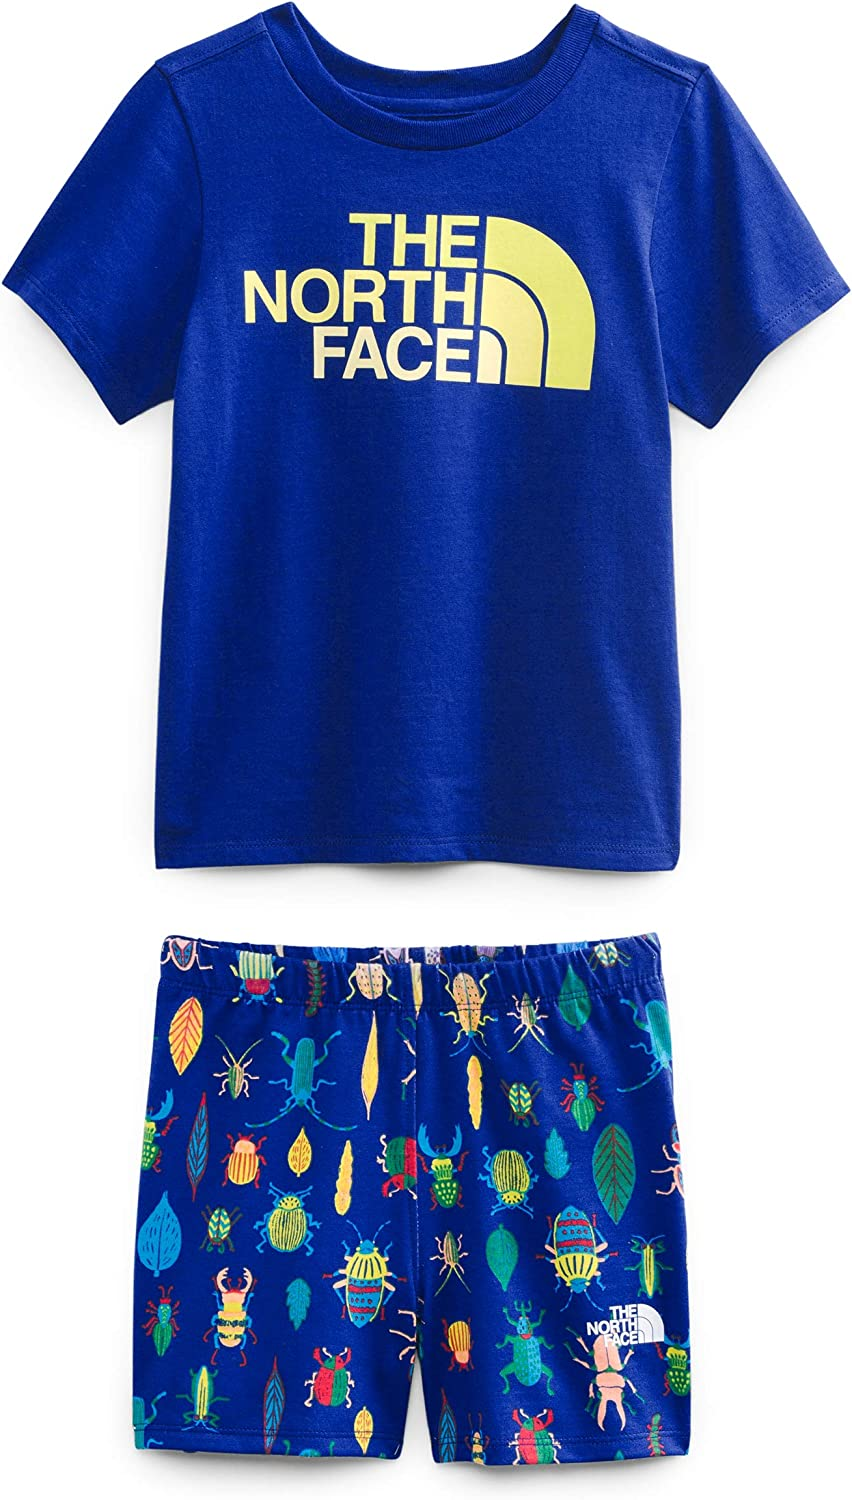 The North Face Toddler Cotton Summer Two-Piece Set